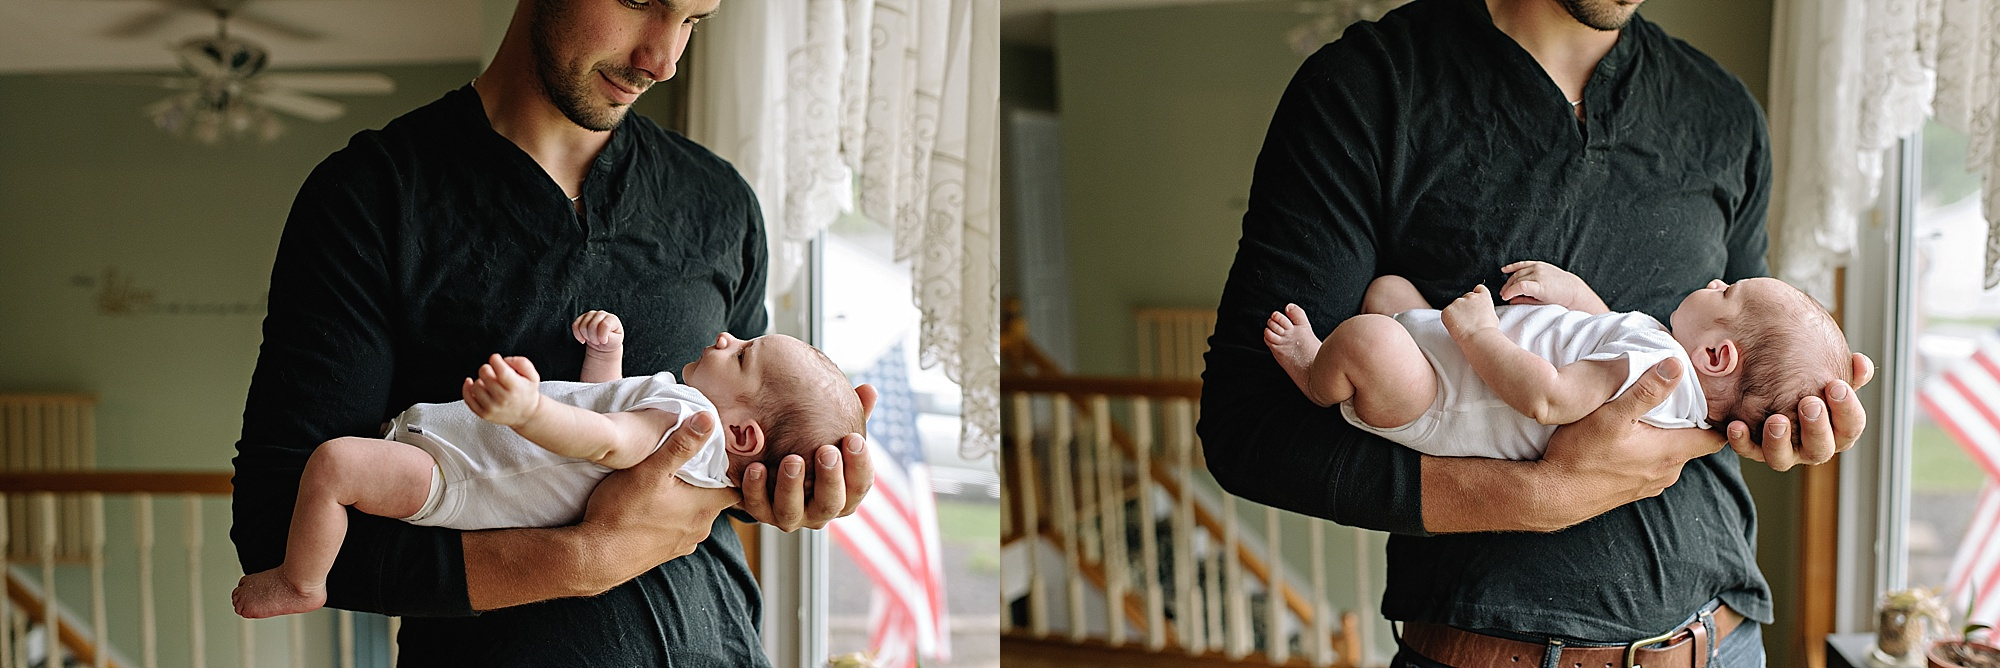 lauren-grayson-photography-cleveland-ohio-photographer-family-newborn-in-home-lifestyle-baby-session-gracelynne_0389.jpg